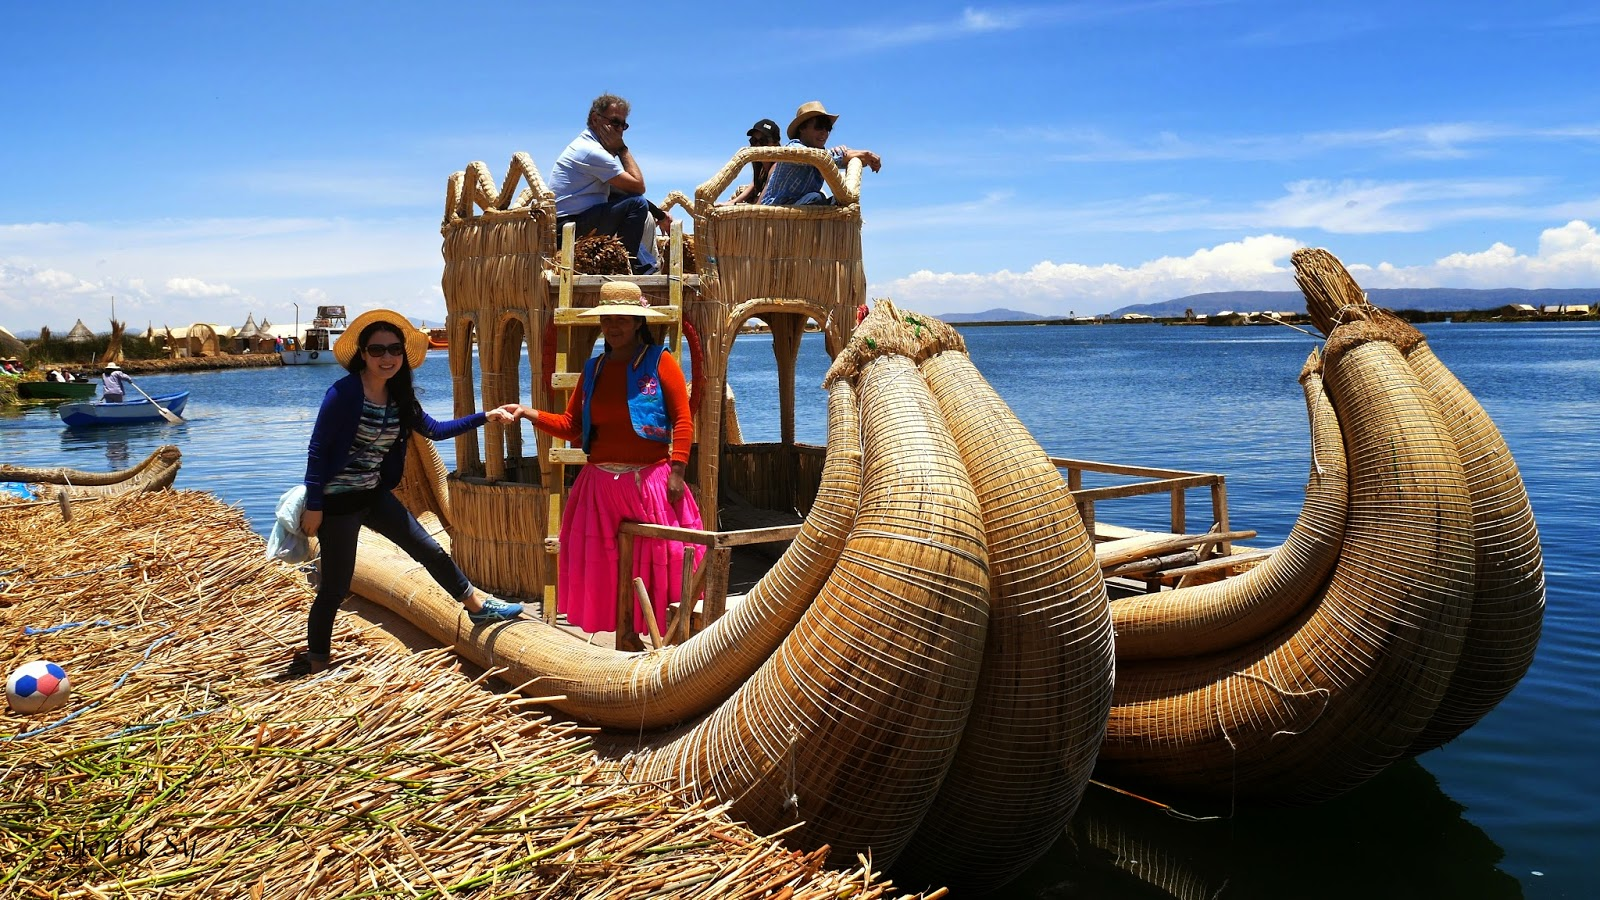 Totora Reed Boat on Uros Islands, Puno, Peru